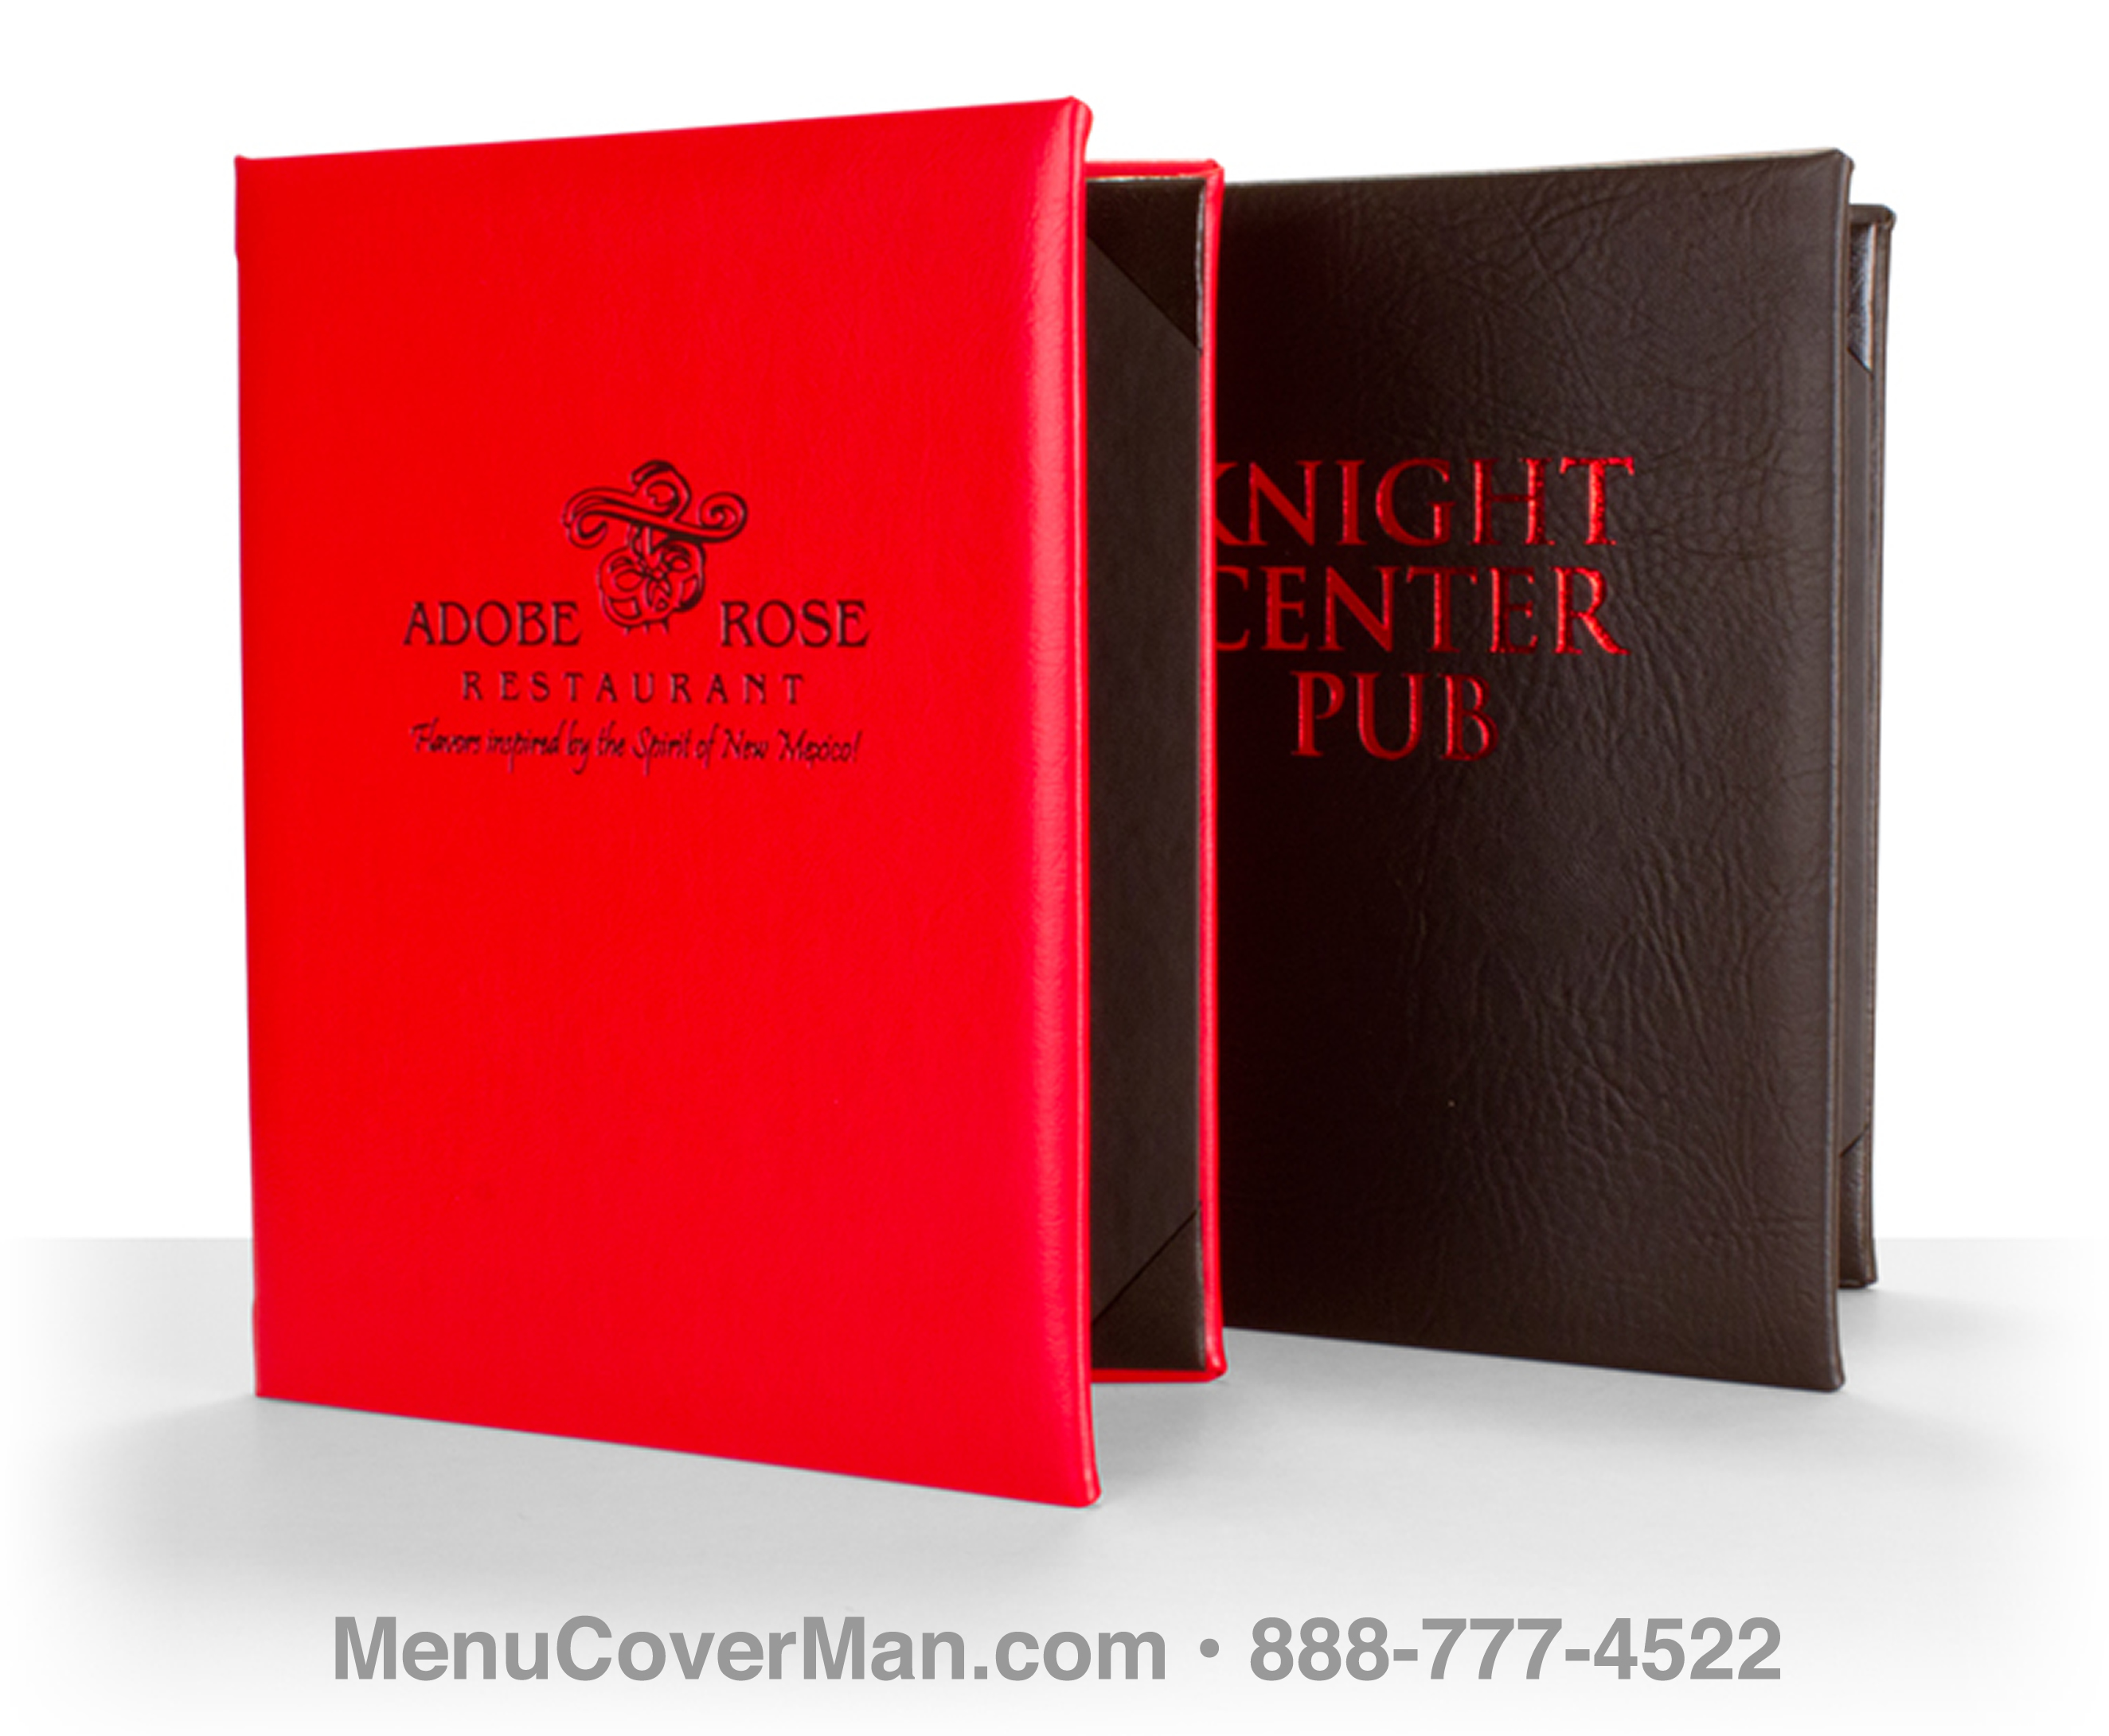 New York Steakhouse Style Menu Covers